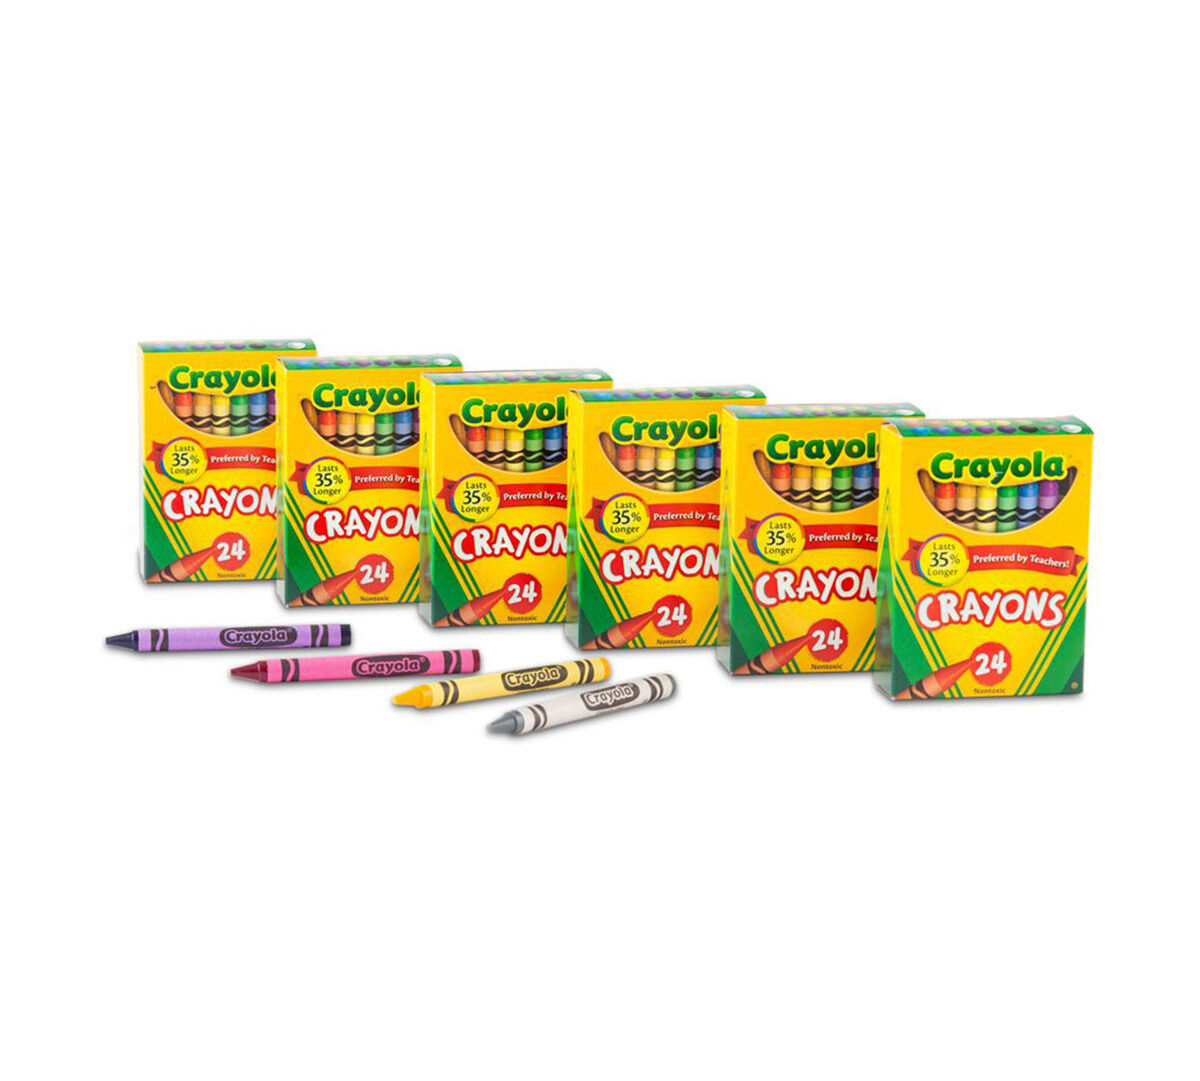 <p> The 24 count crayons 6 Pack includes 6 individual packs of Crayola 24 count crayons! </p>